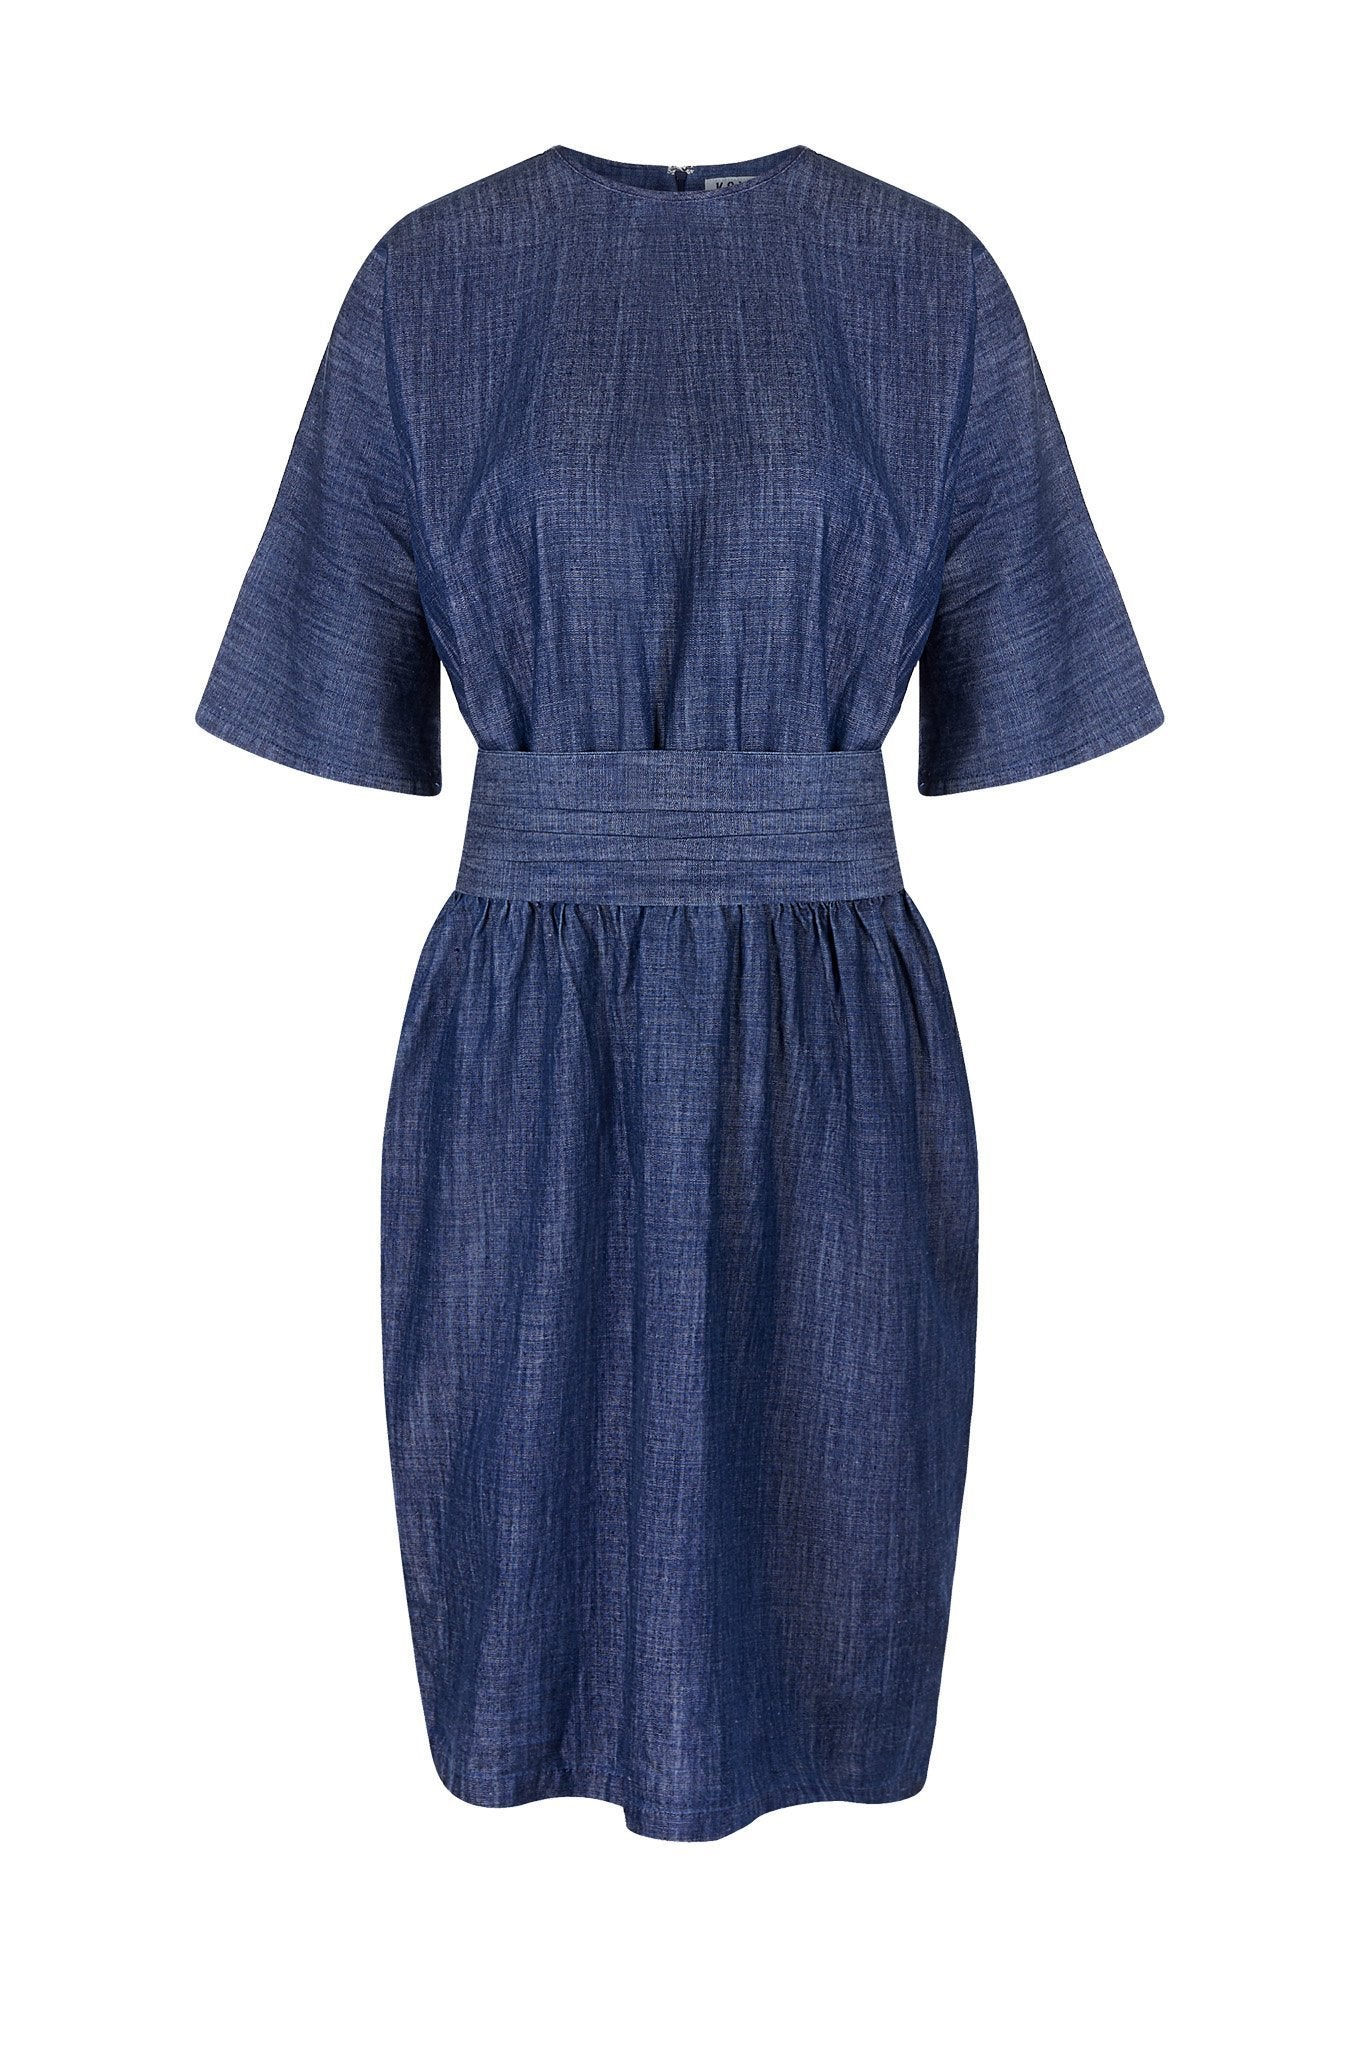 Komodo OBI ONE Tencel Linen Dress